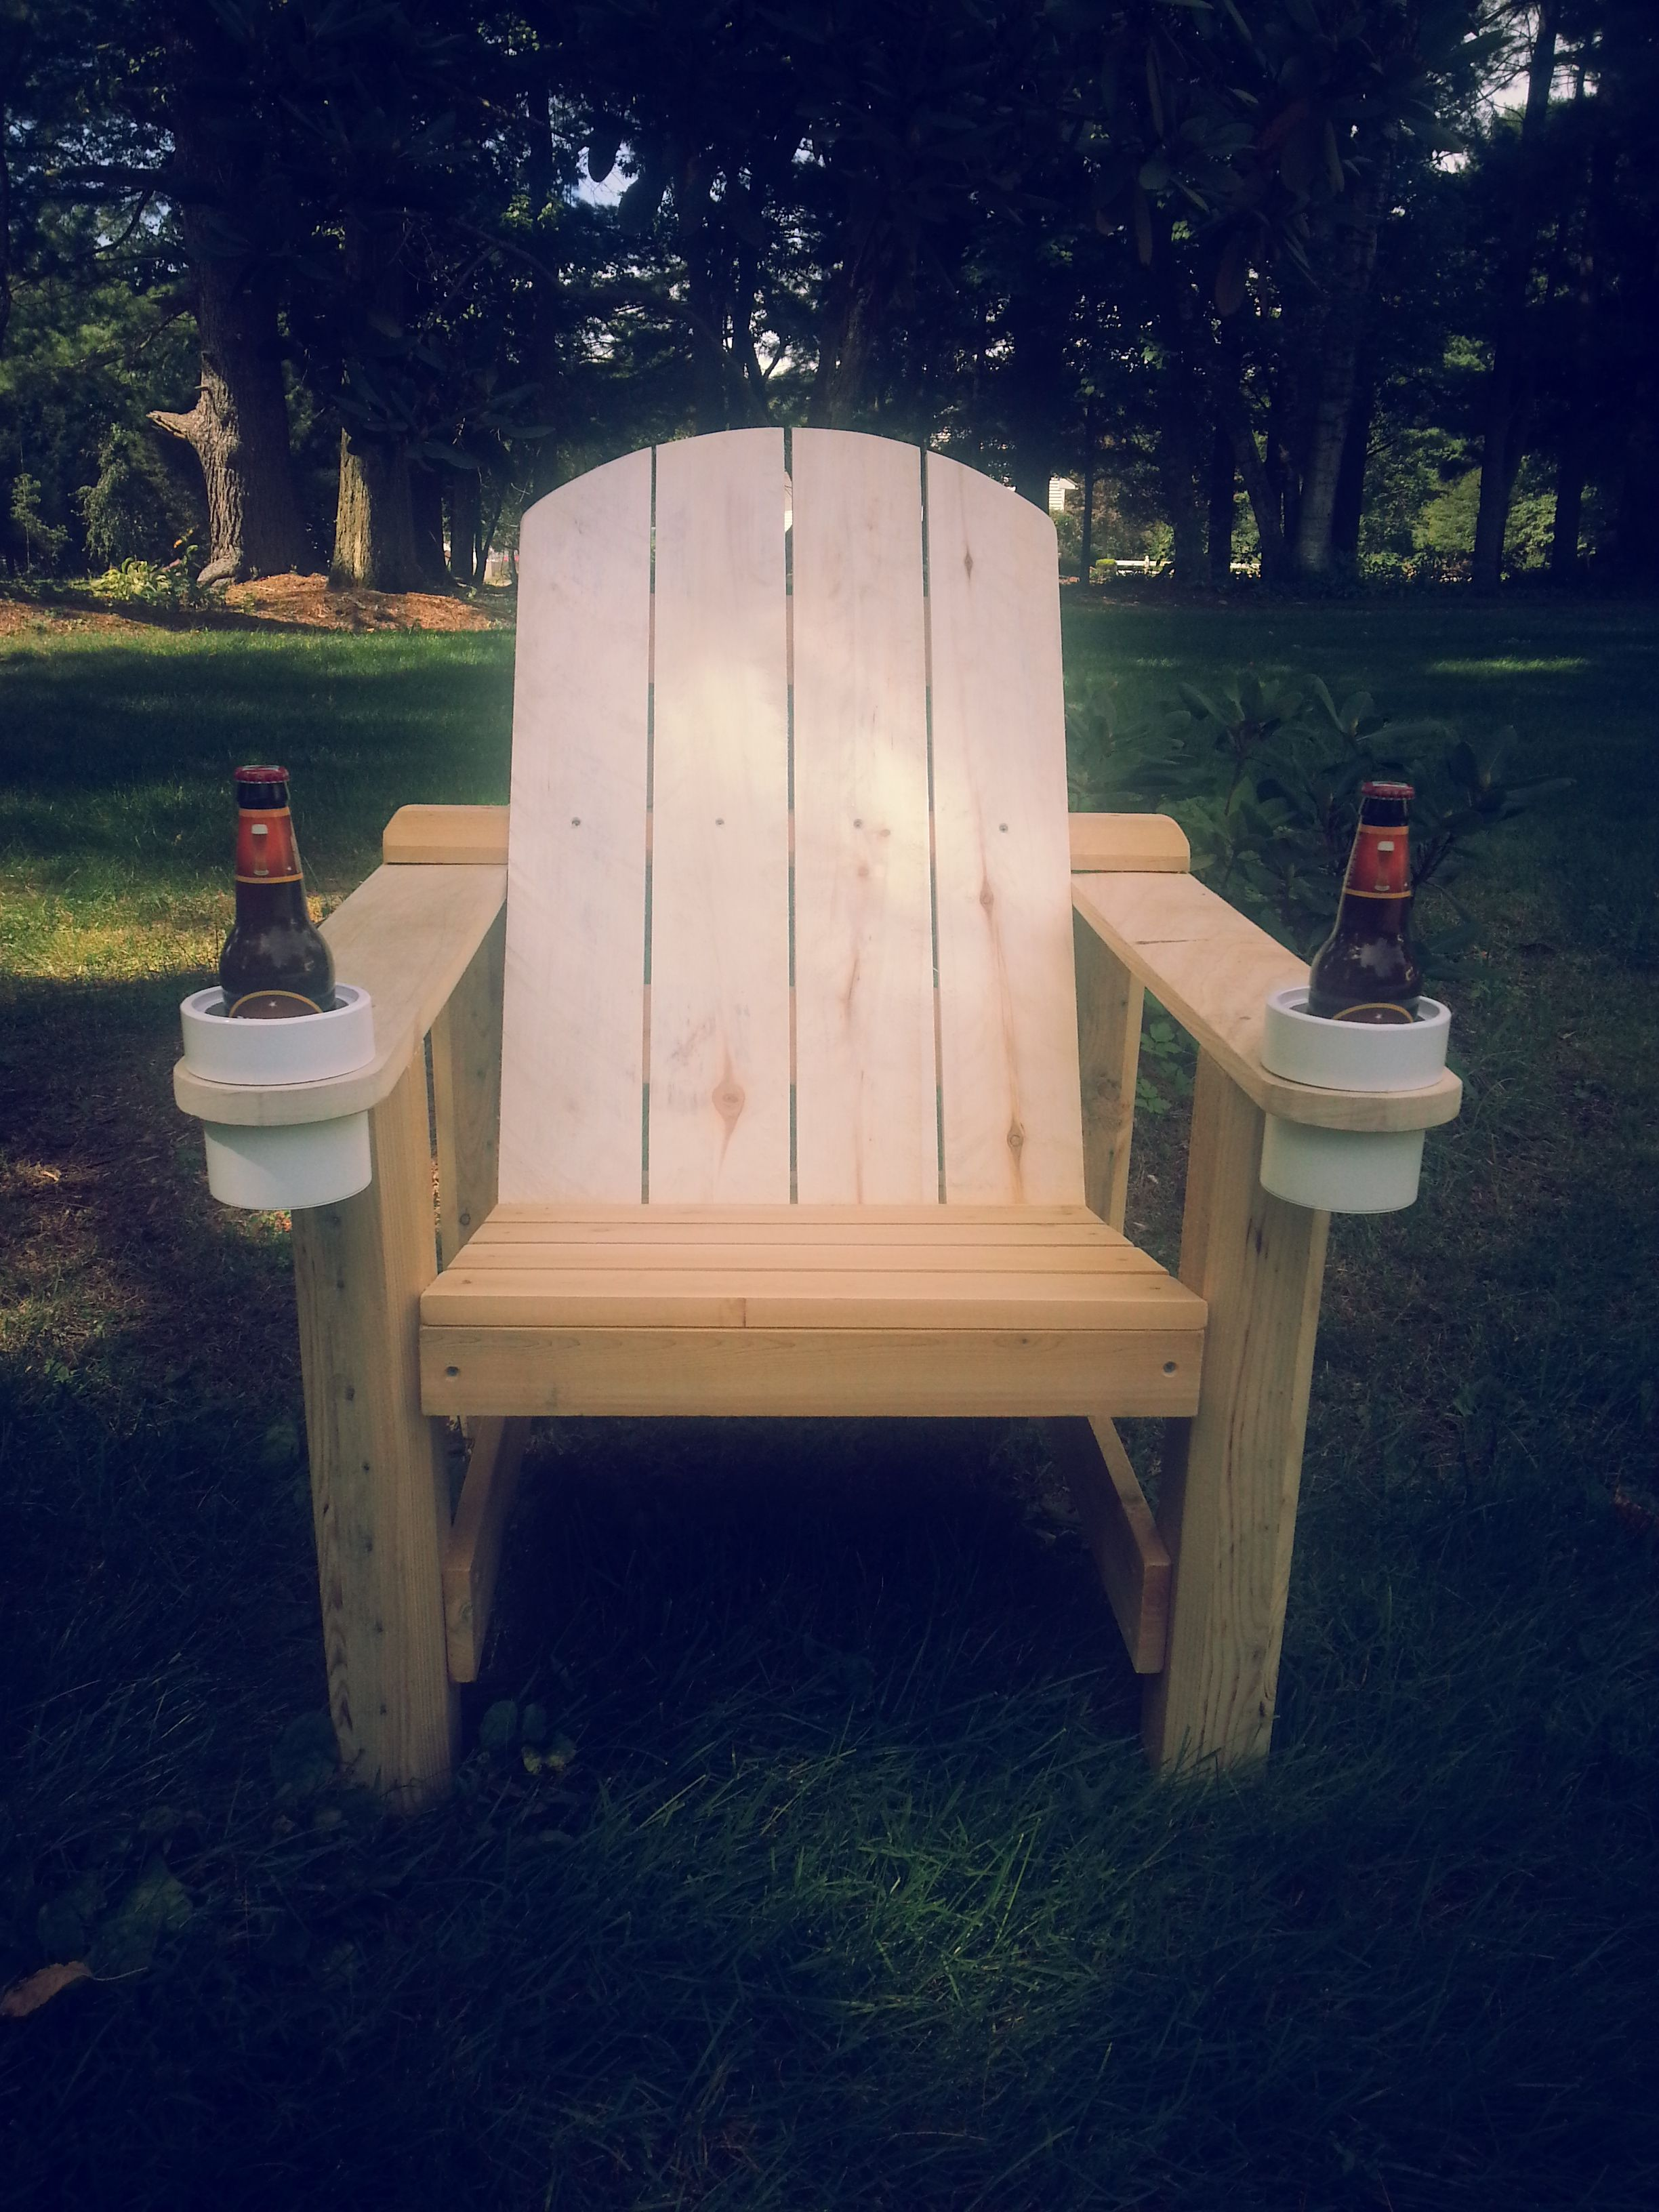 Of Kind Adirondack Drinkin' Chair Cup Drink